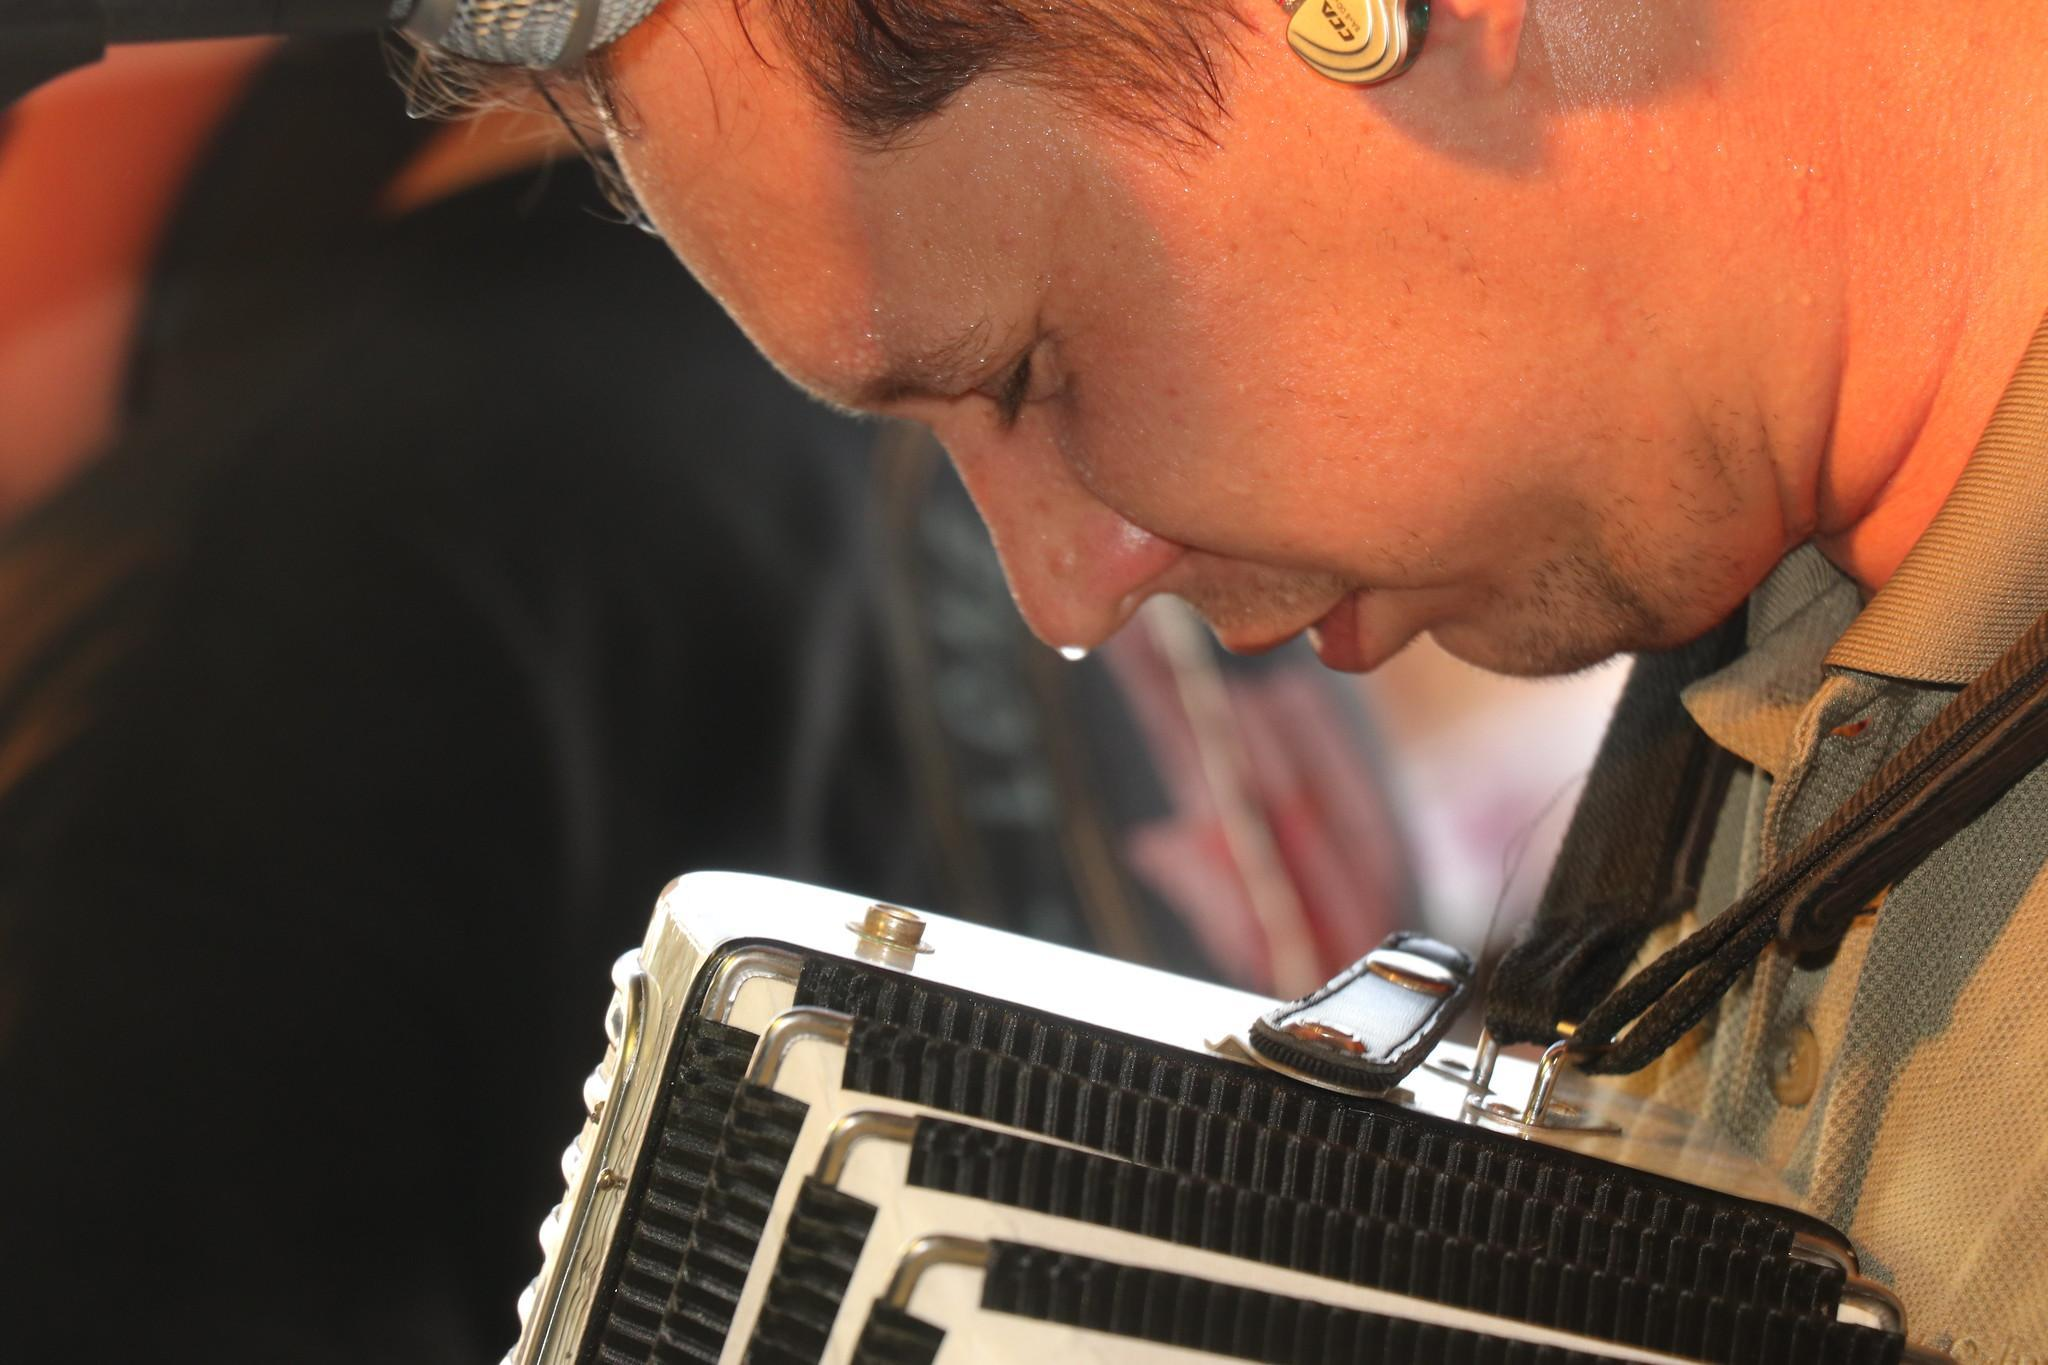 Love this photo of Garrett Neubauer at the Praha Picnic. Gary E. McKee captured this up-and-comer sweatin' to the polkas. No matter how hot it is at the church picnics, I never hear anyone complain. They are just grateful to be there. Amen.